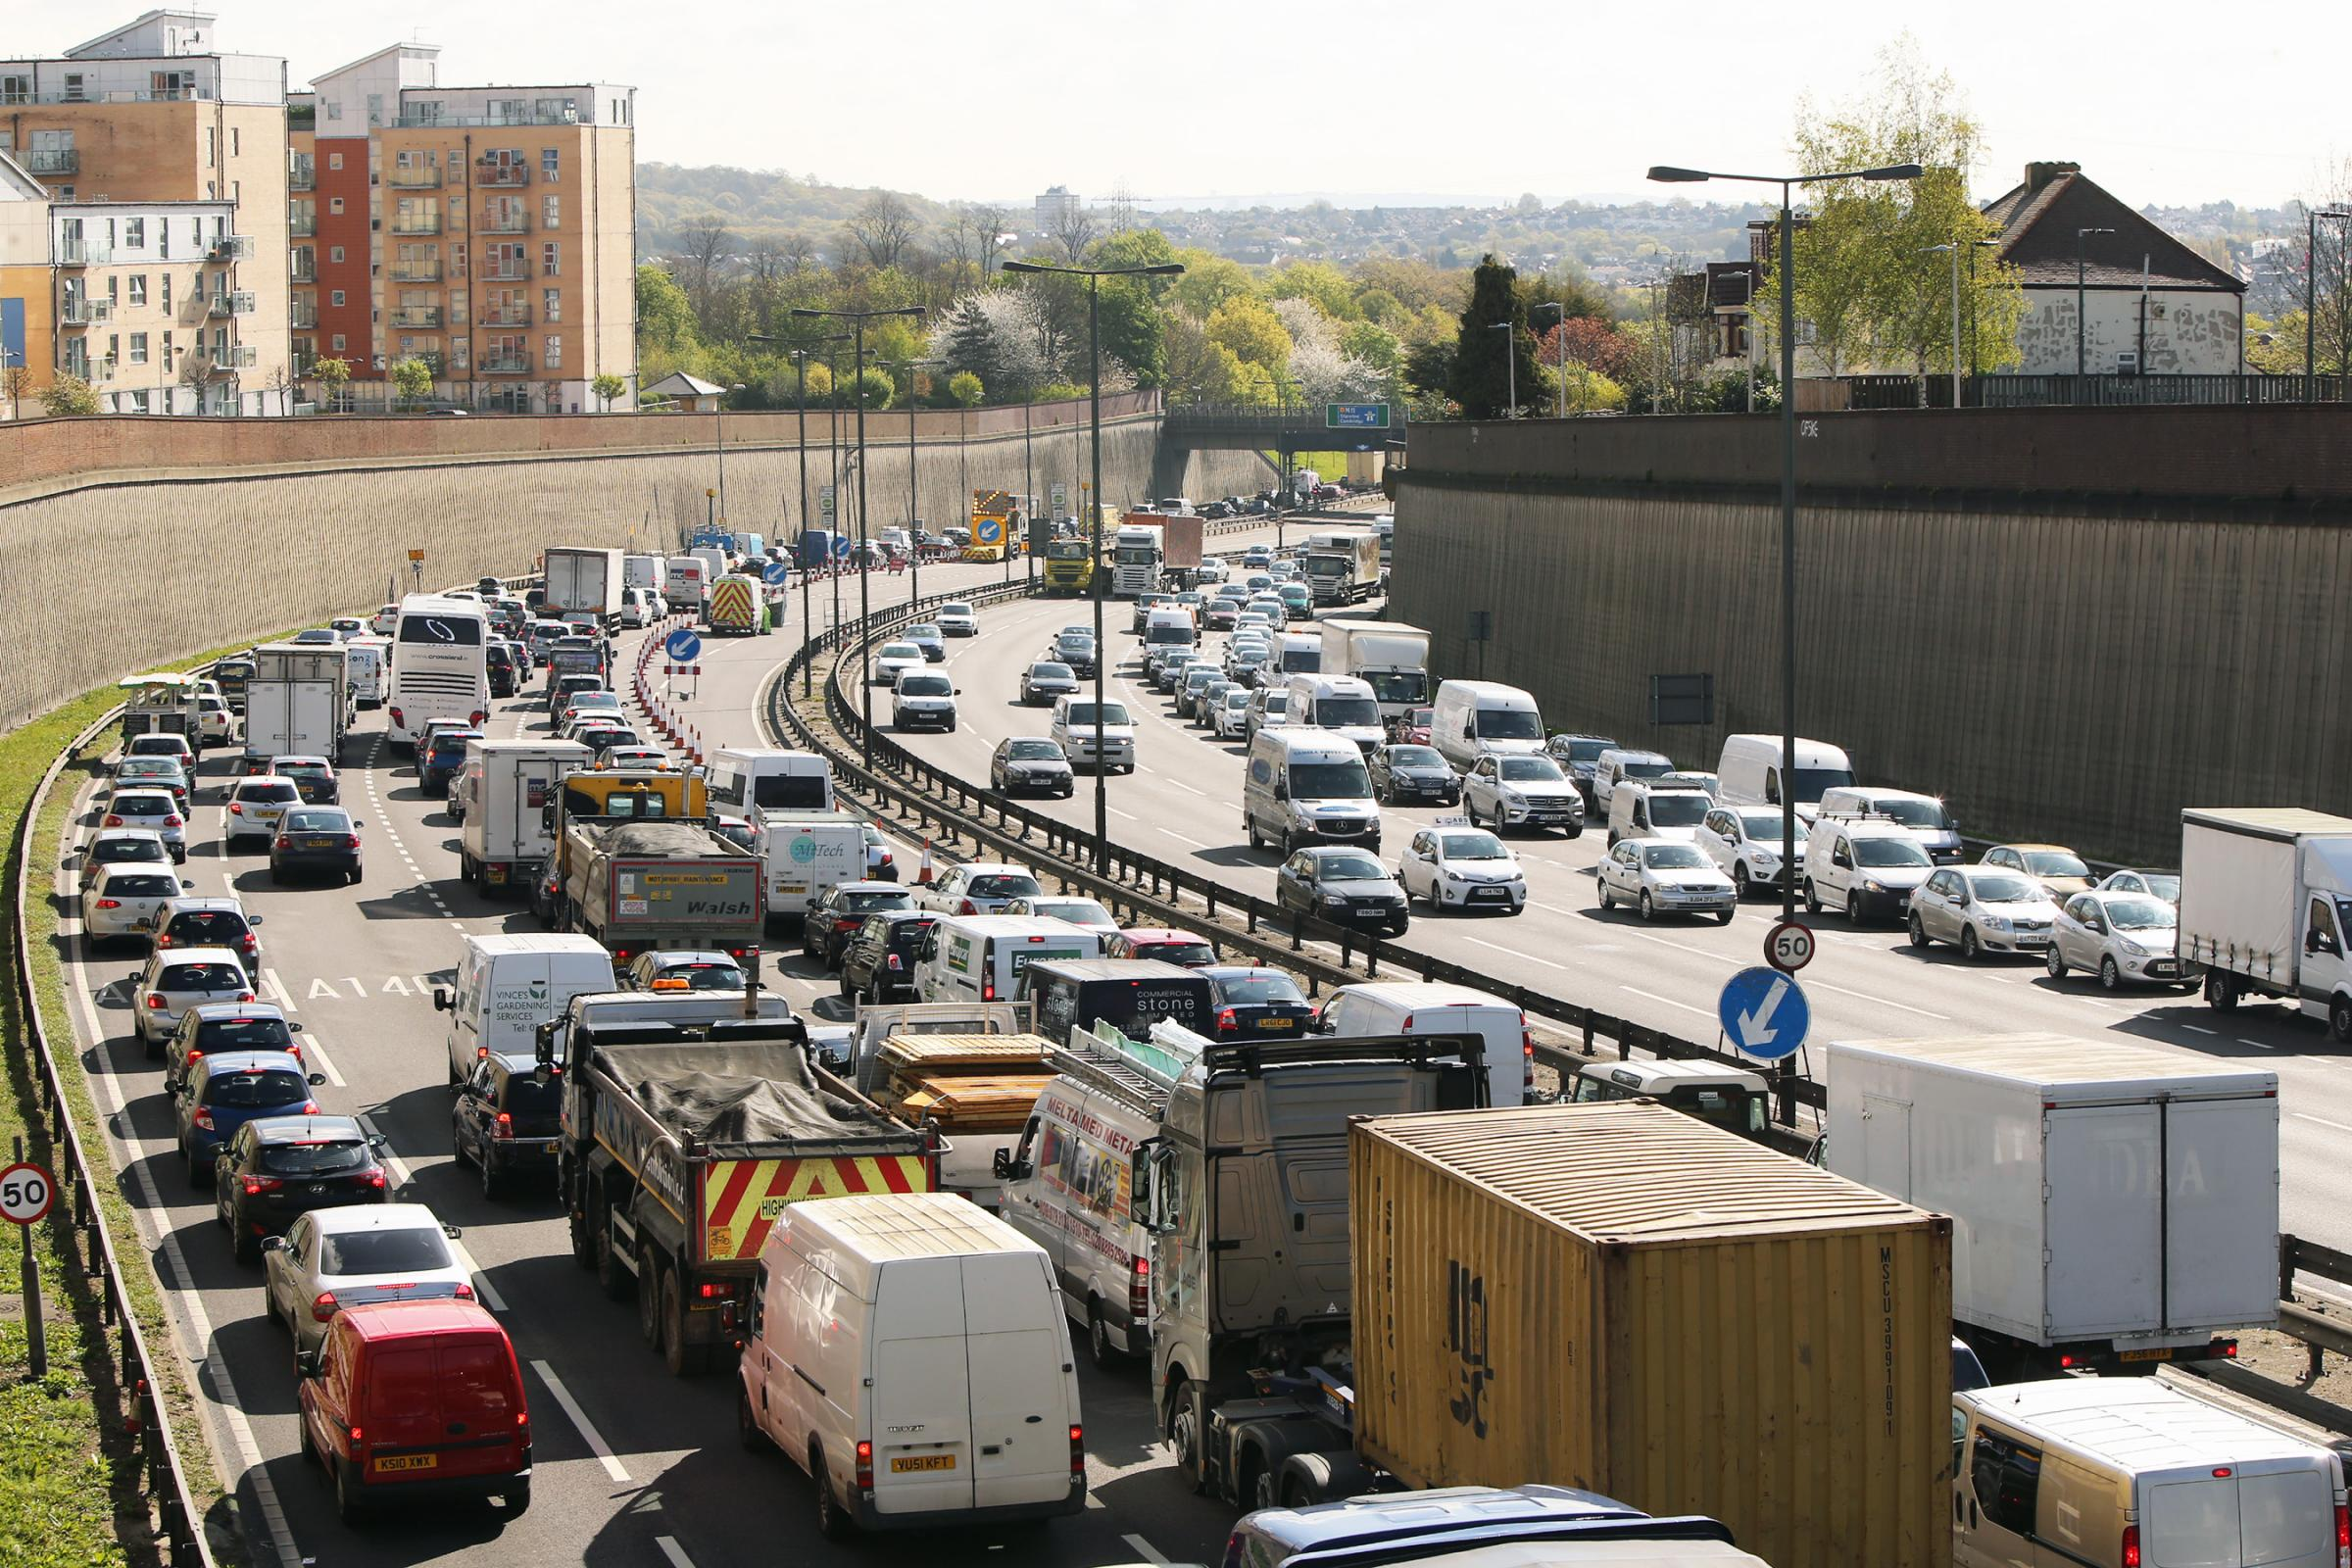 The North Circular has long queues in Brent Cross, Finchley, Friern Barnet and Southgate